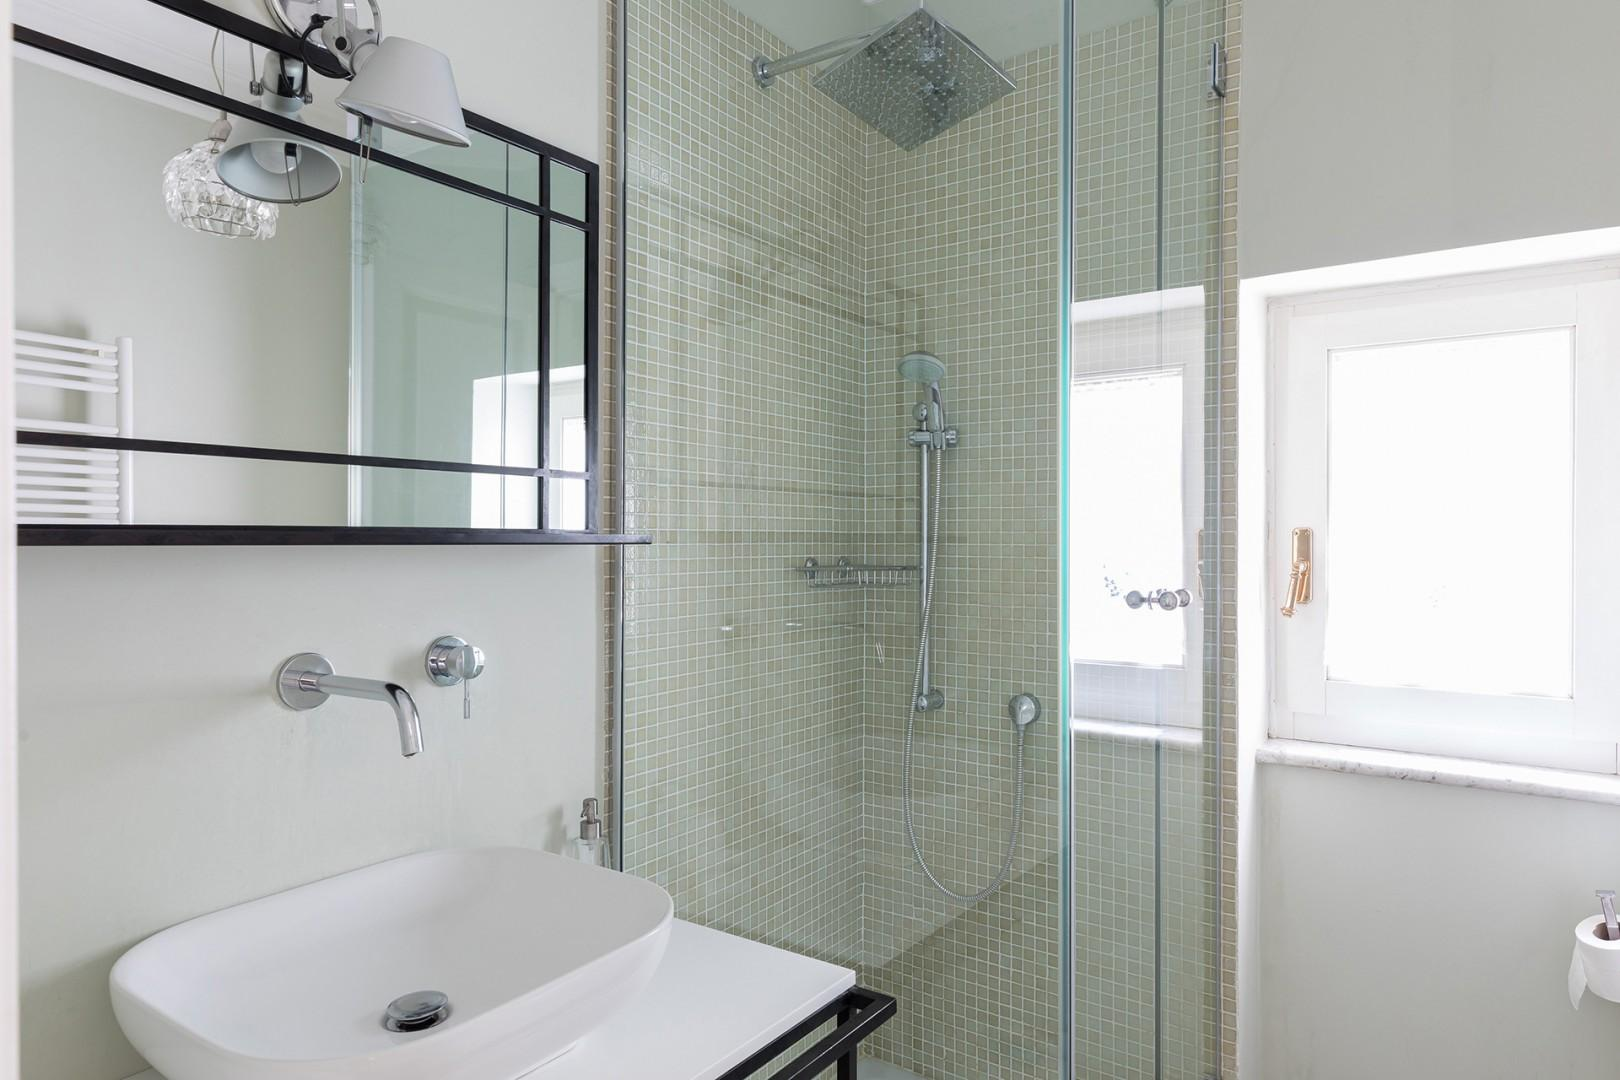 Bathroom 3 across the hall from bedroom 3 has a shower with both rainfall showerhead and handheld.